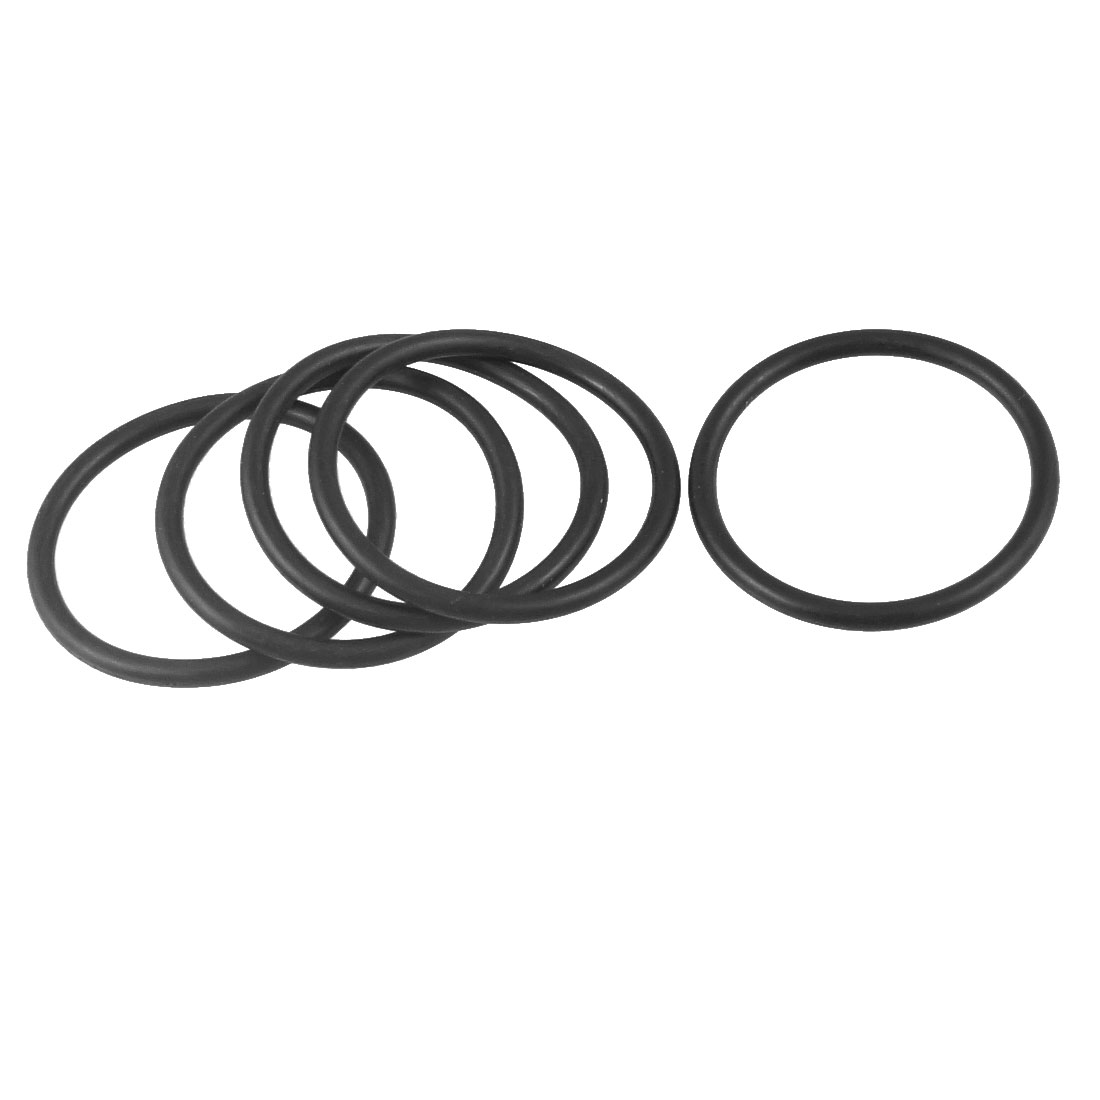 5 Pcs 45mm x 38mm x 3.5mm Industrial Rubber O Ring Oil Seal Gaskets